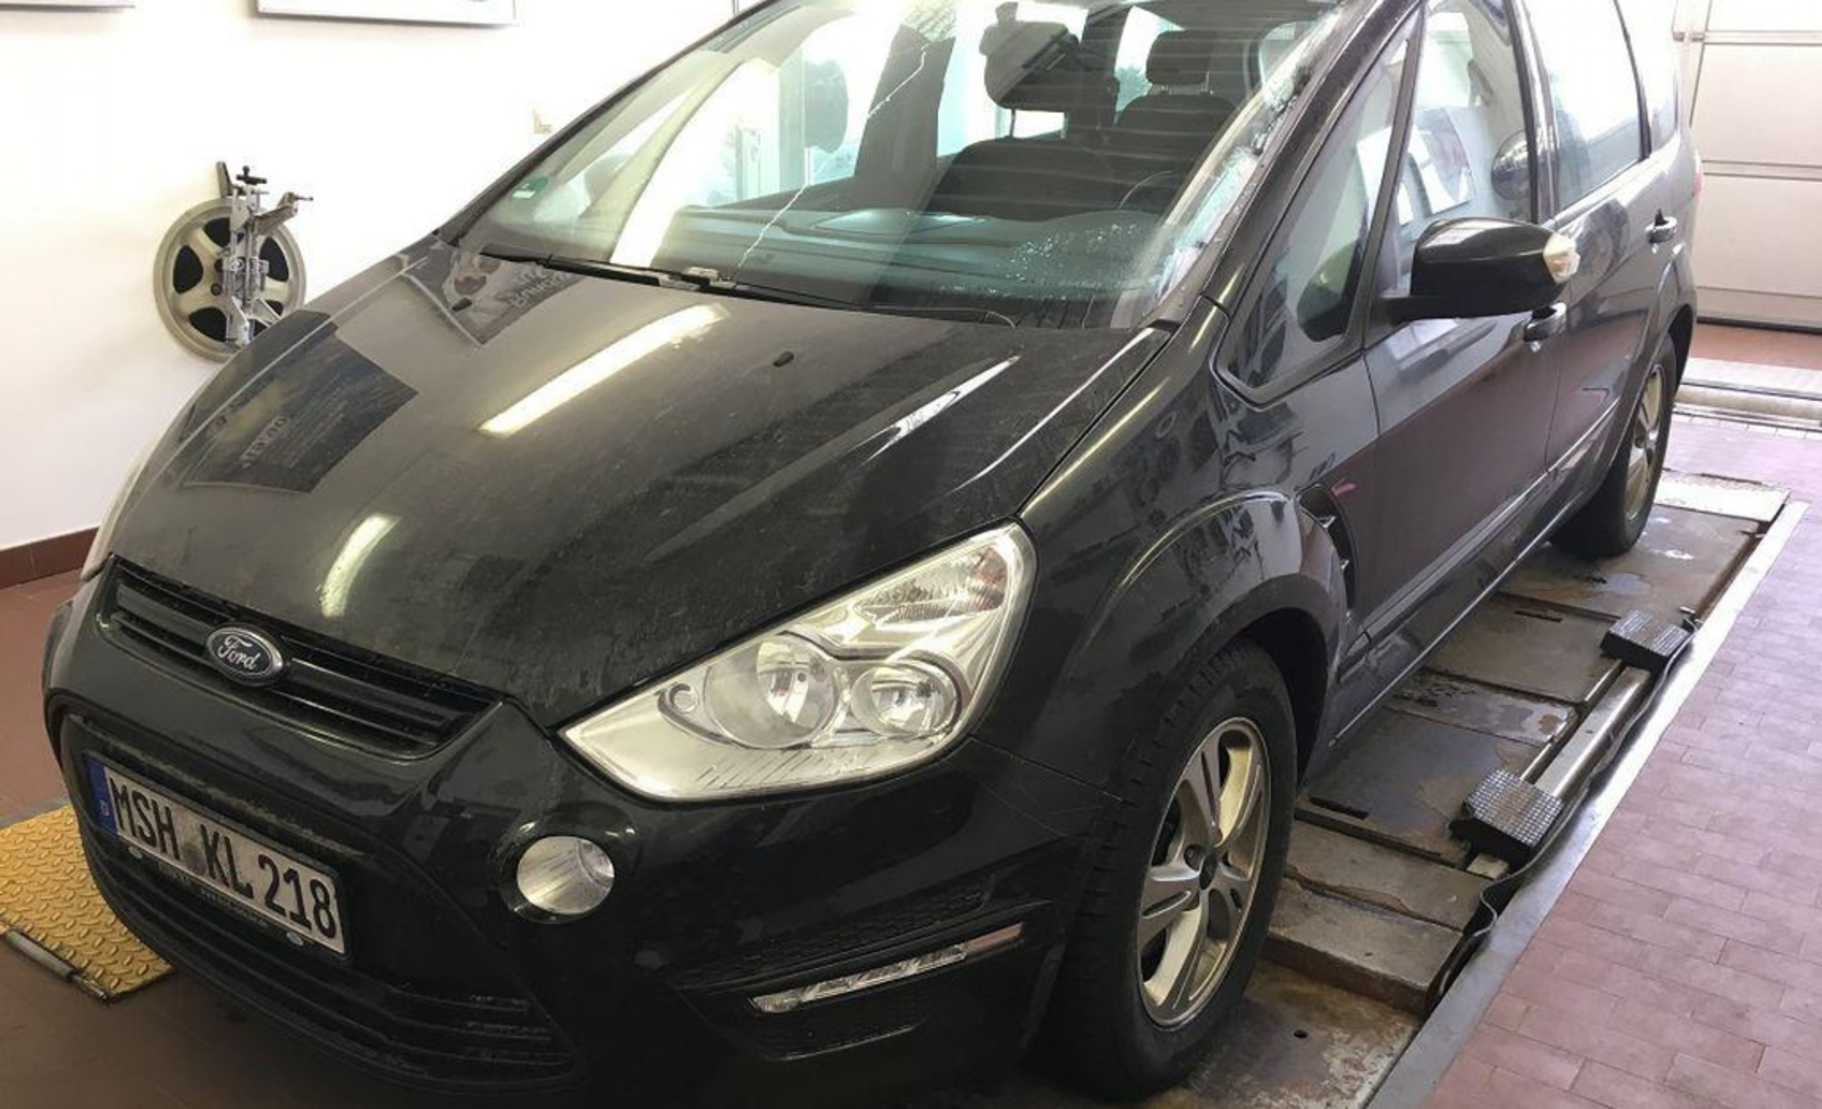 Ford S-Max 2.0 TDCi DPF Aut., Business Edition (495133) detail1